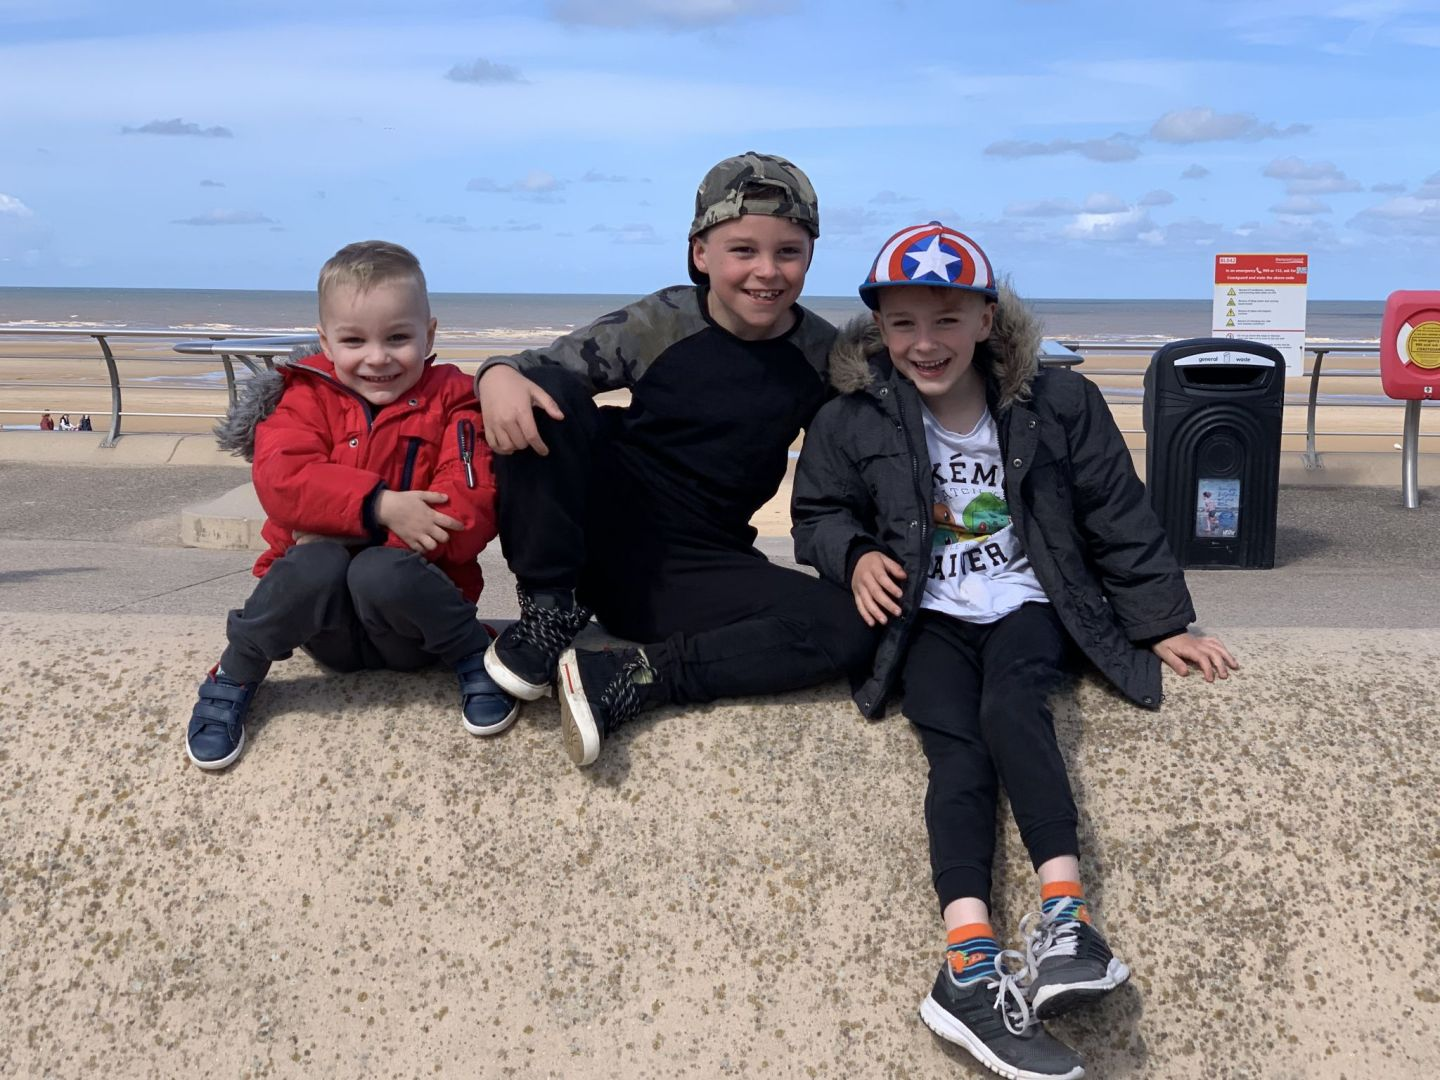 Our Family Weekend In Blackpool